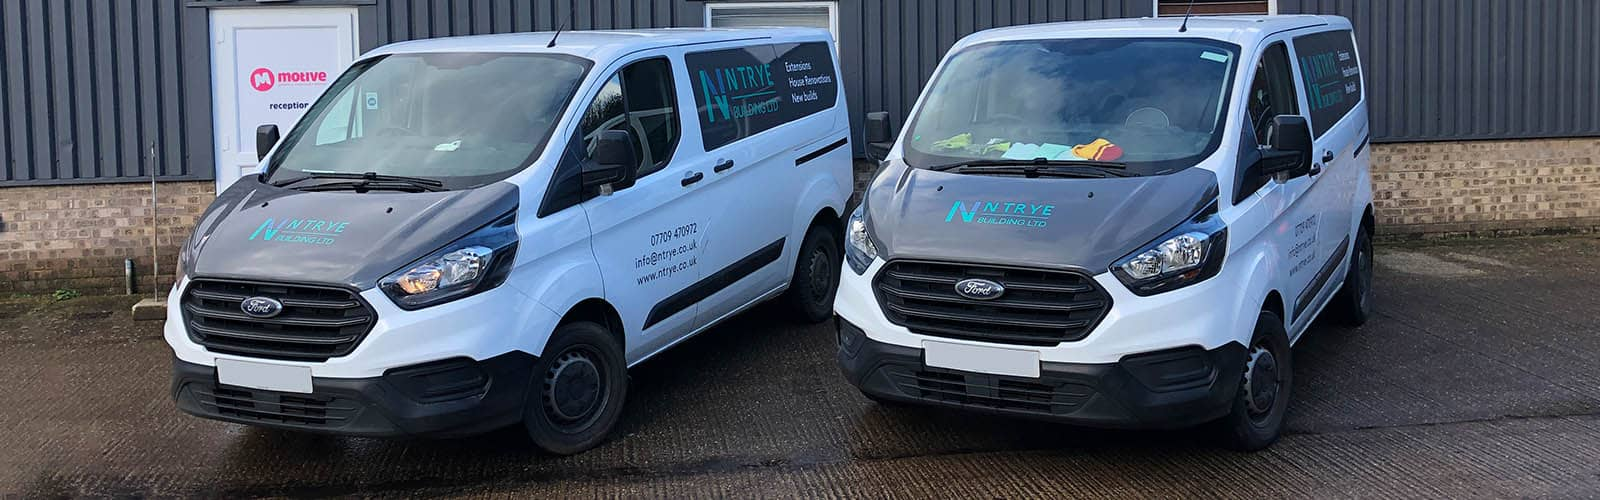 Use your vehicle to advertise with van graphics